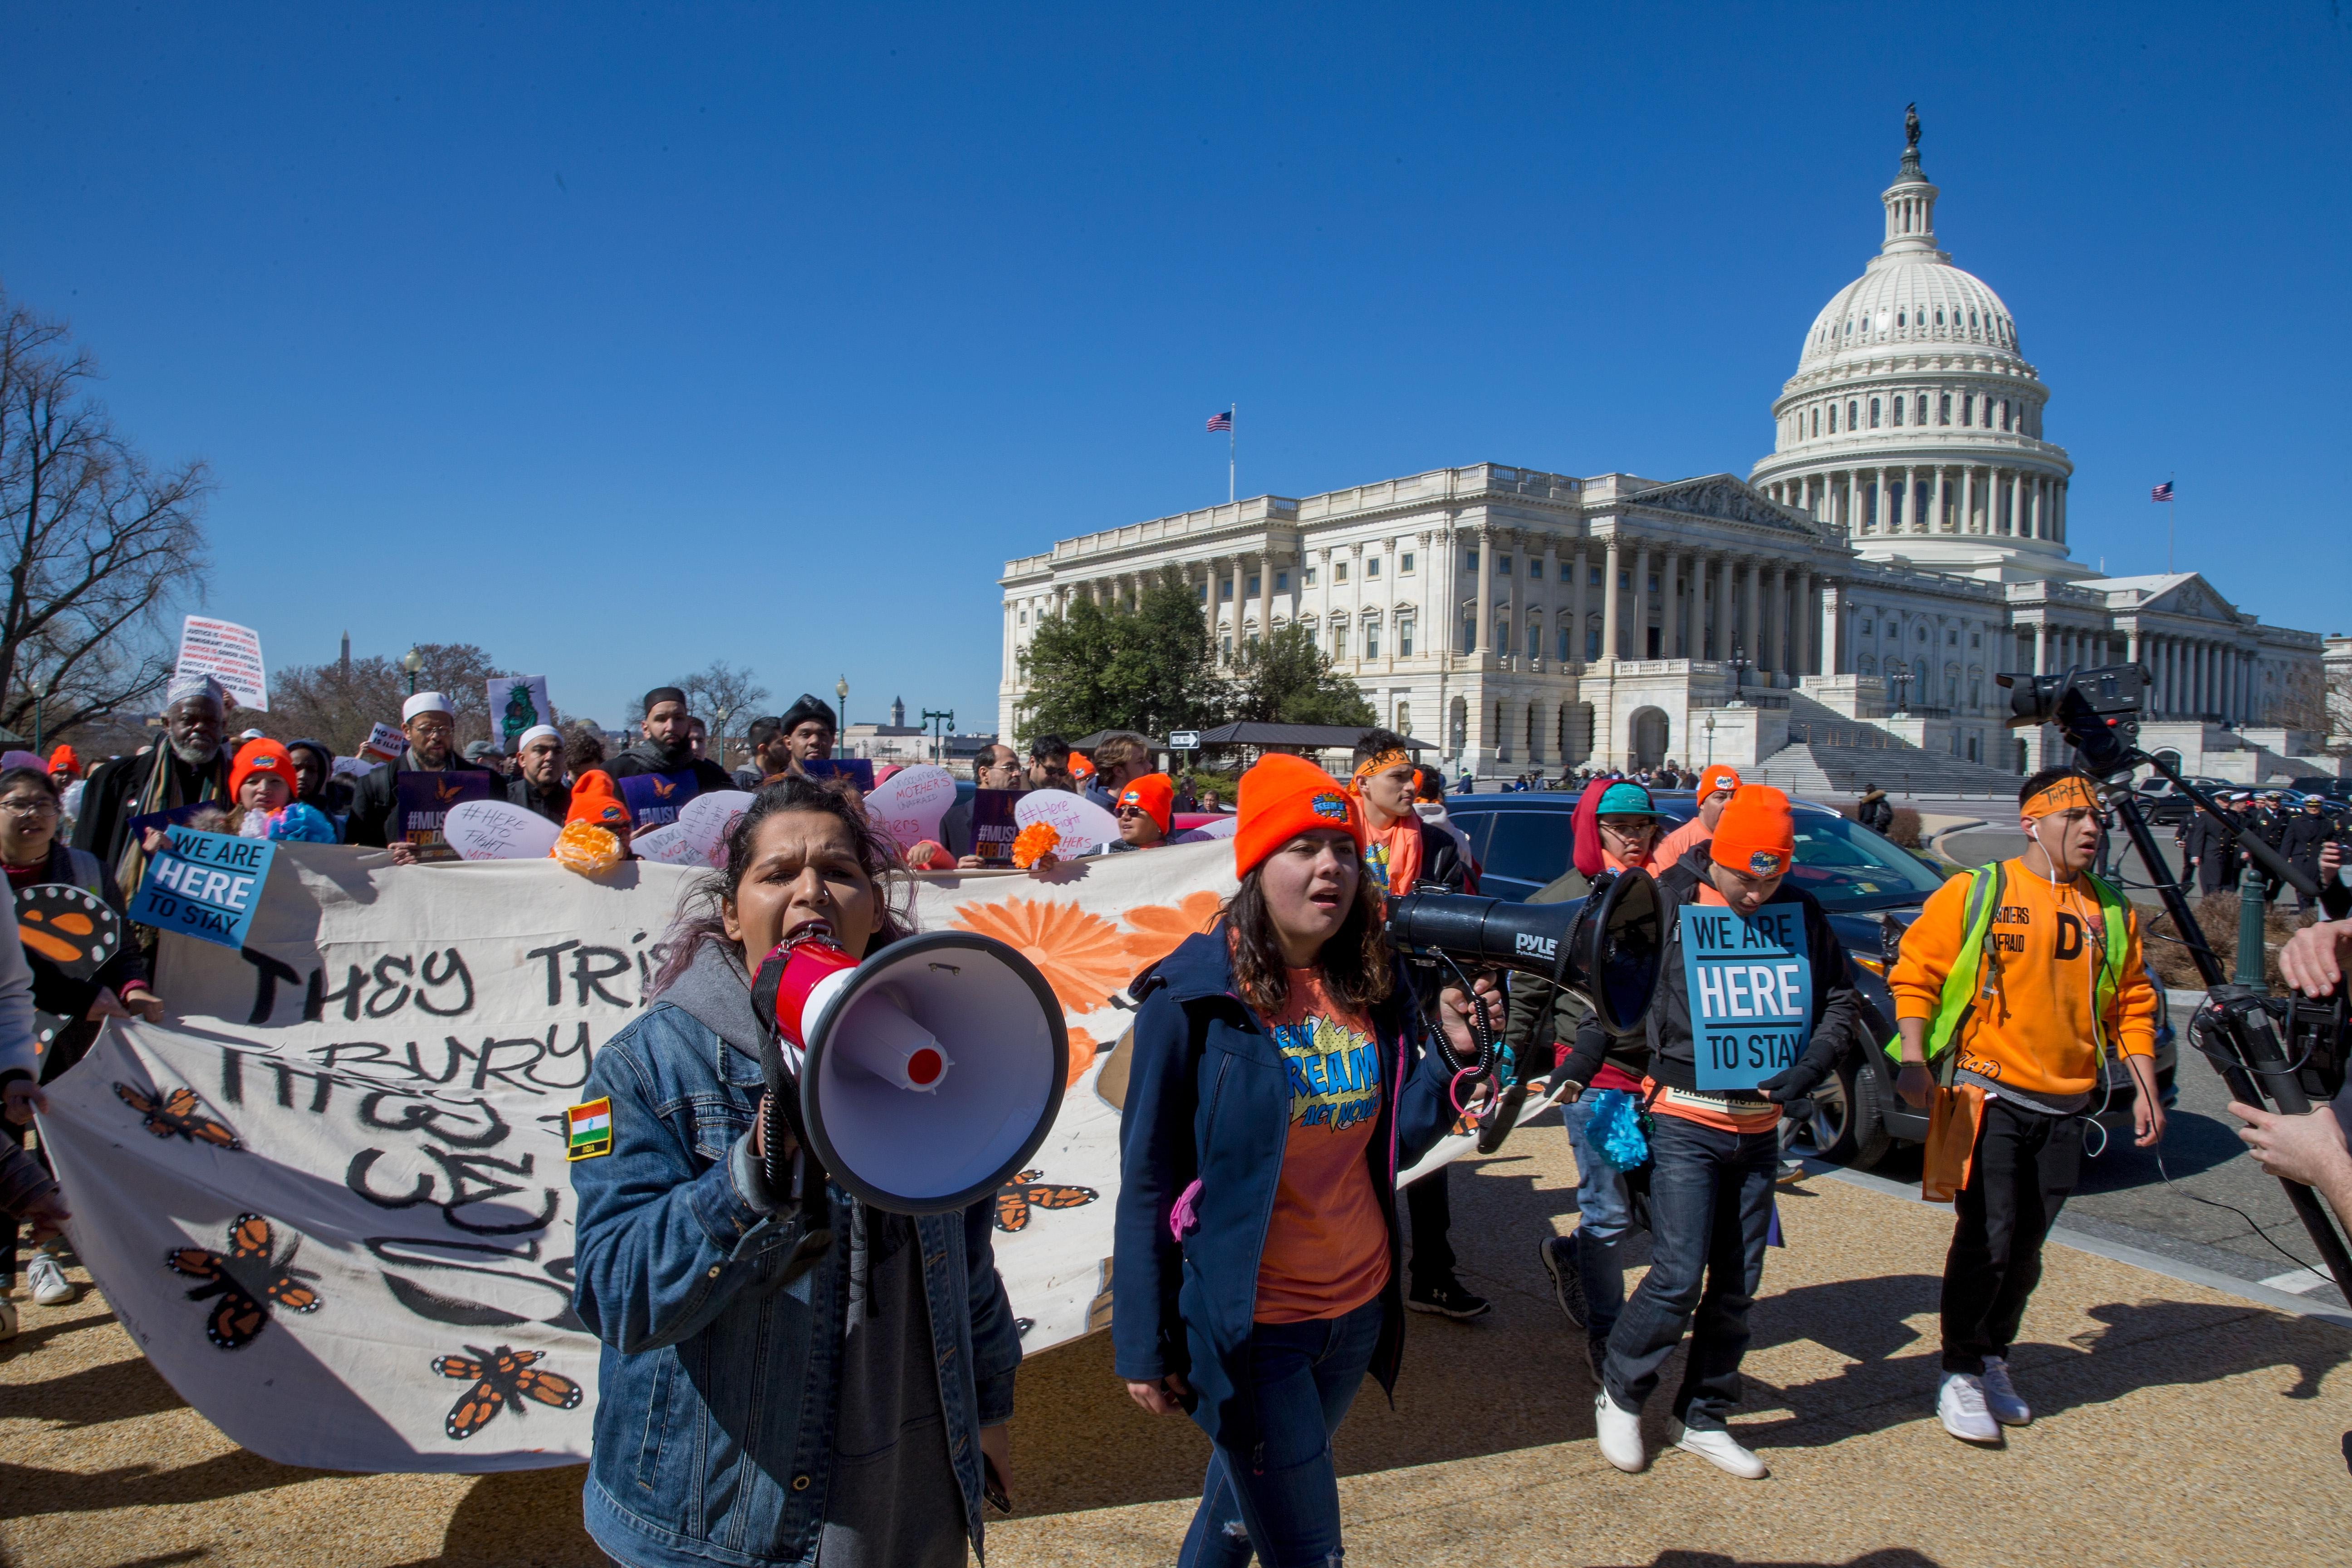 DACA supporters marching at the U.S. Capitol.